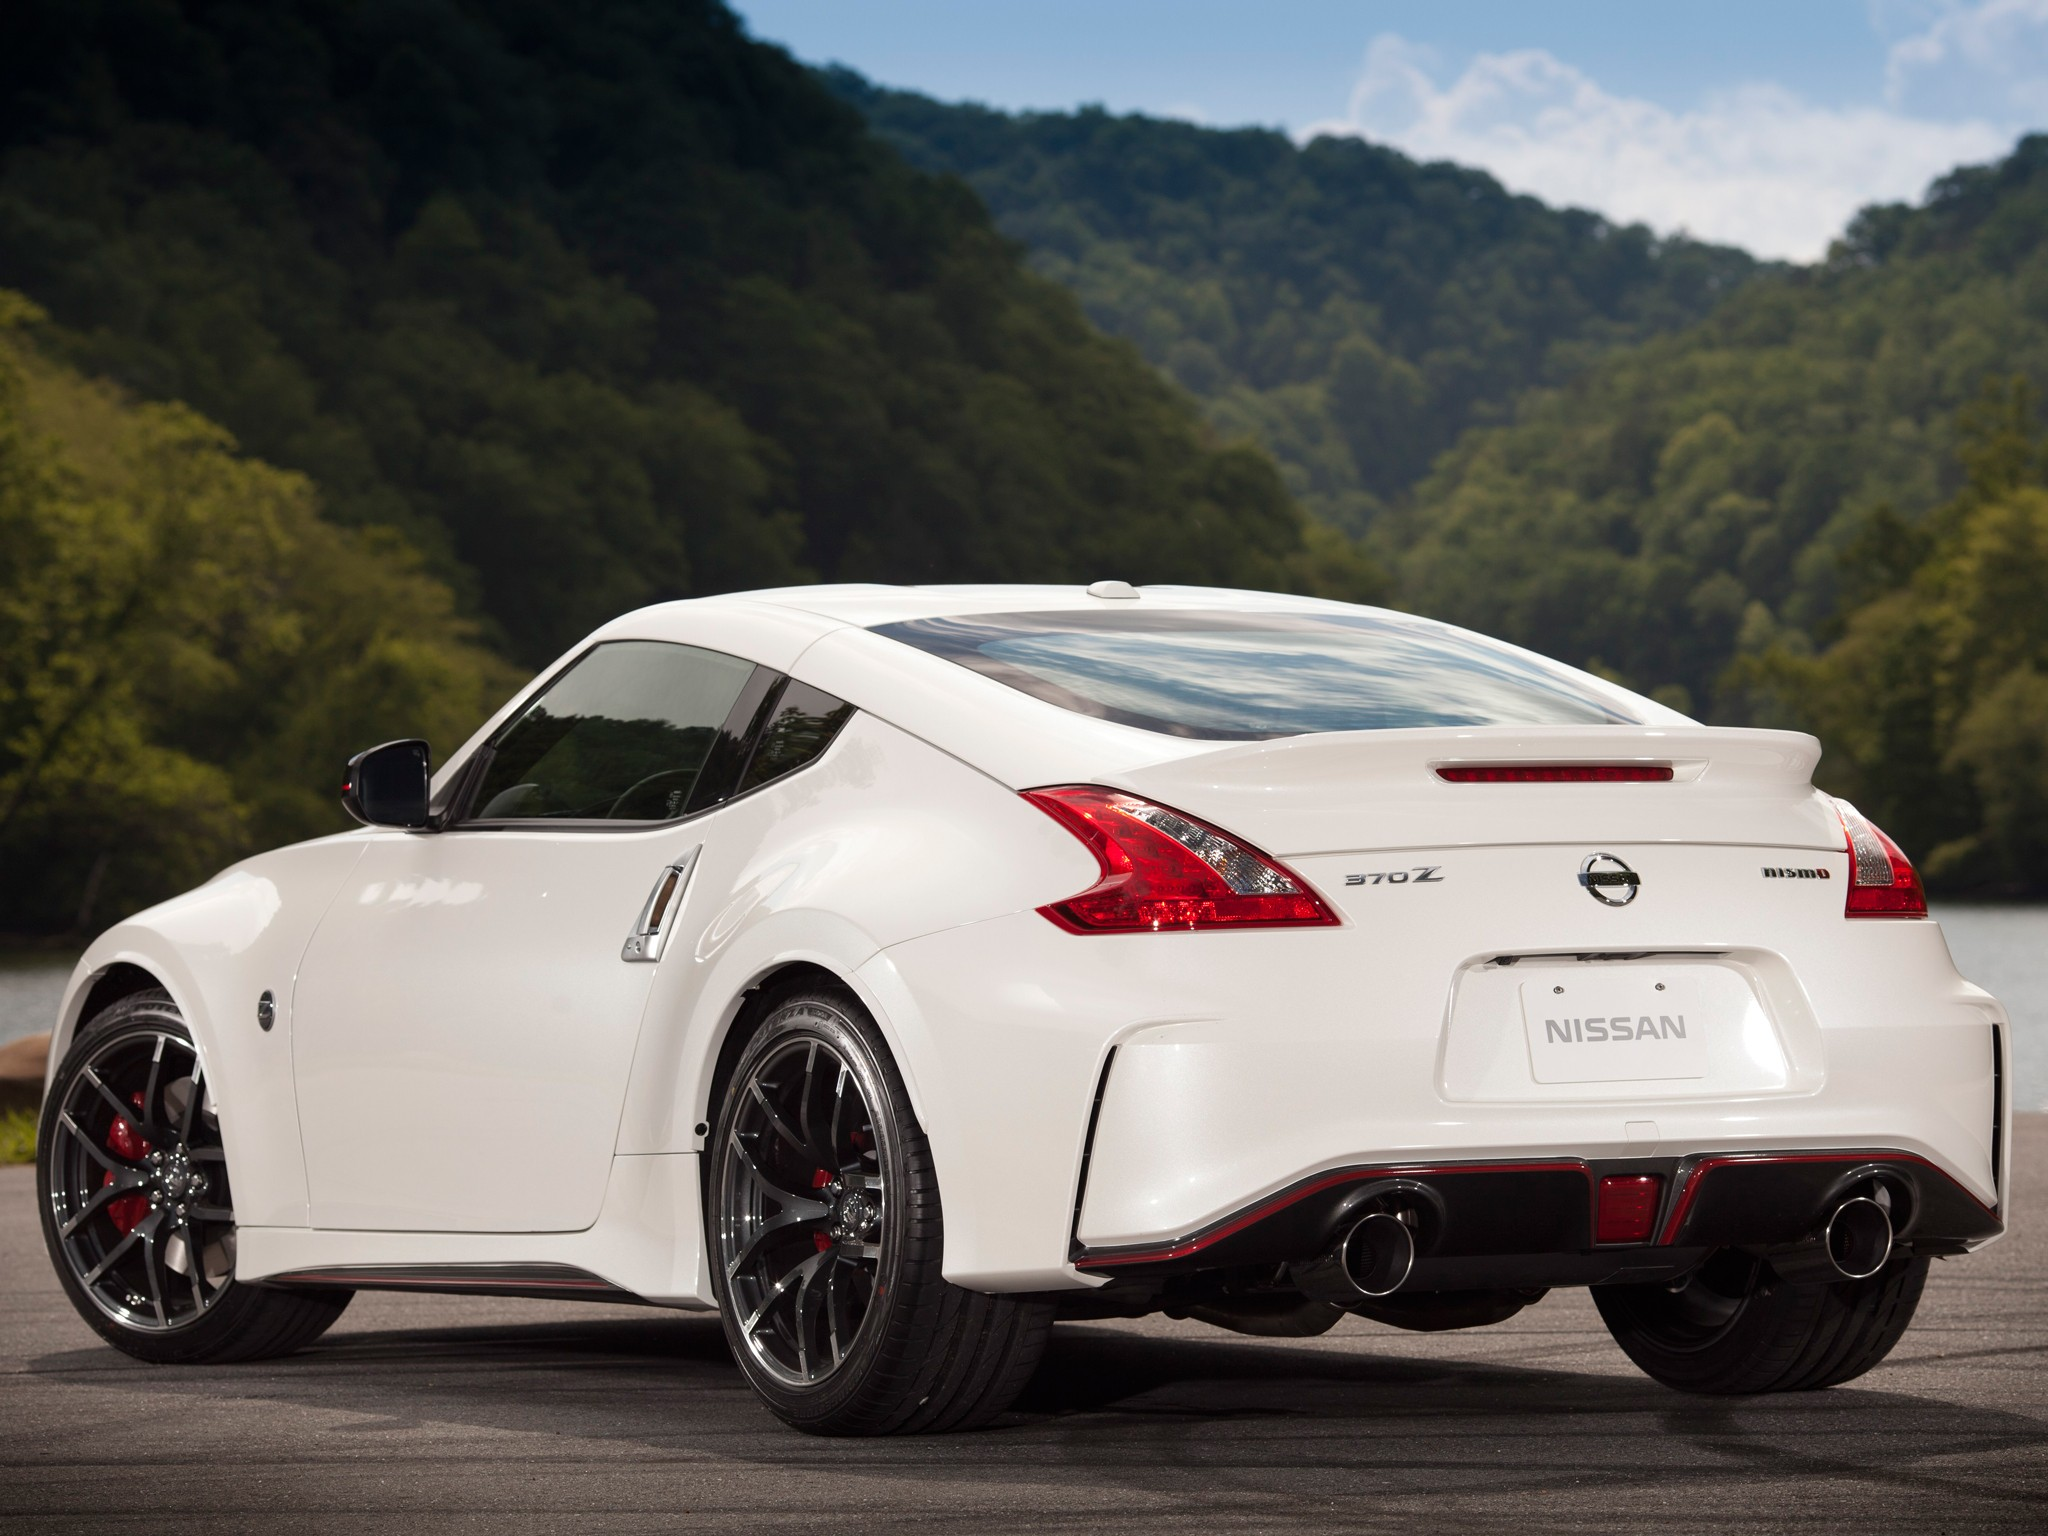 nissan 370z nismo specs photos 2014 2015 2016 2017 2018 autoevolution. Black Bedroom Furniture Sets. Home Design Ideas